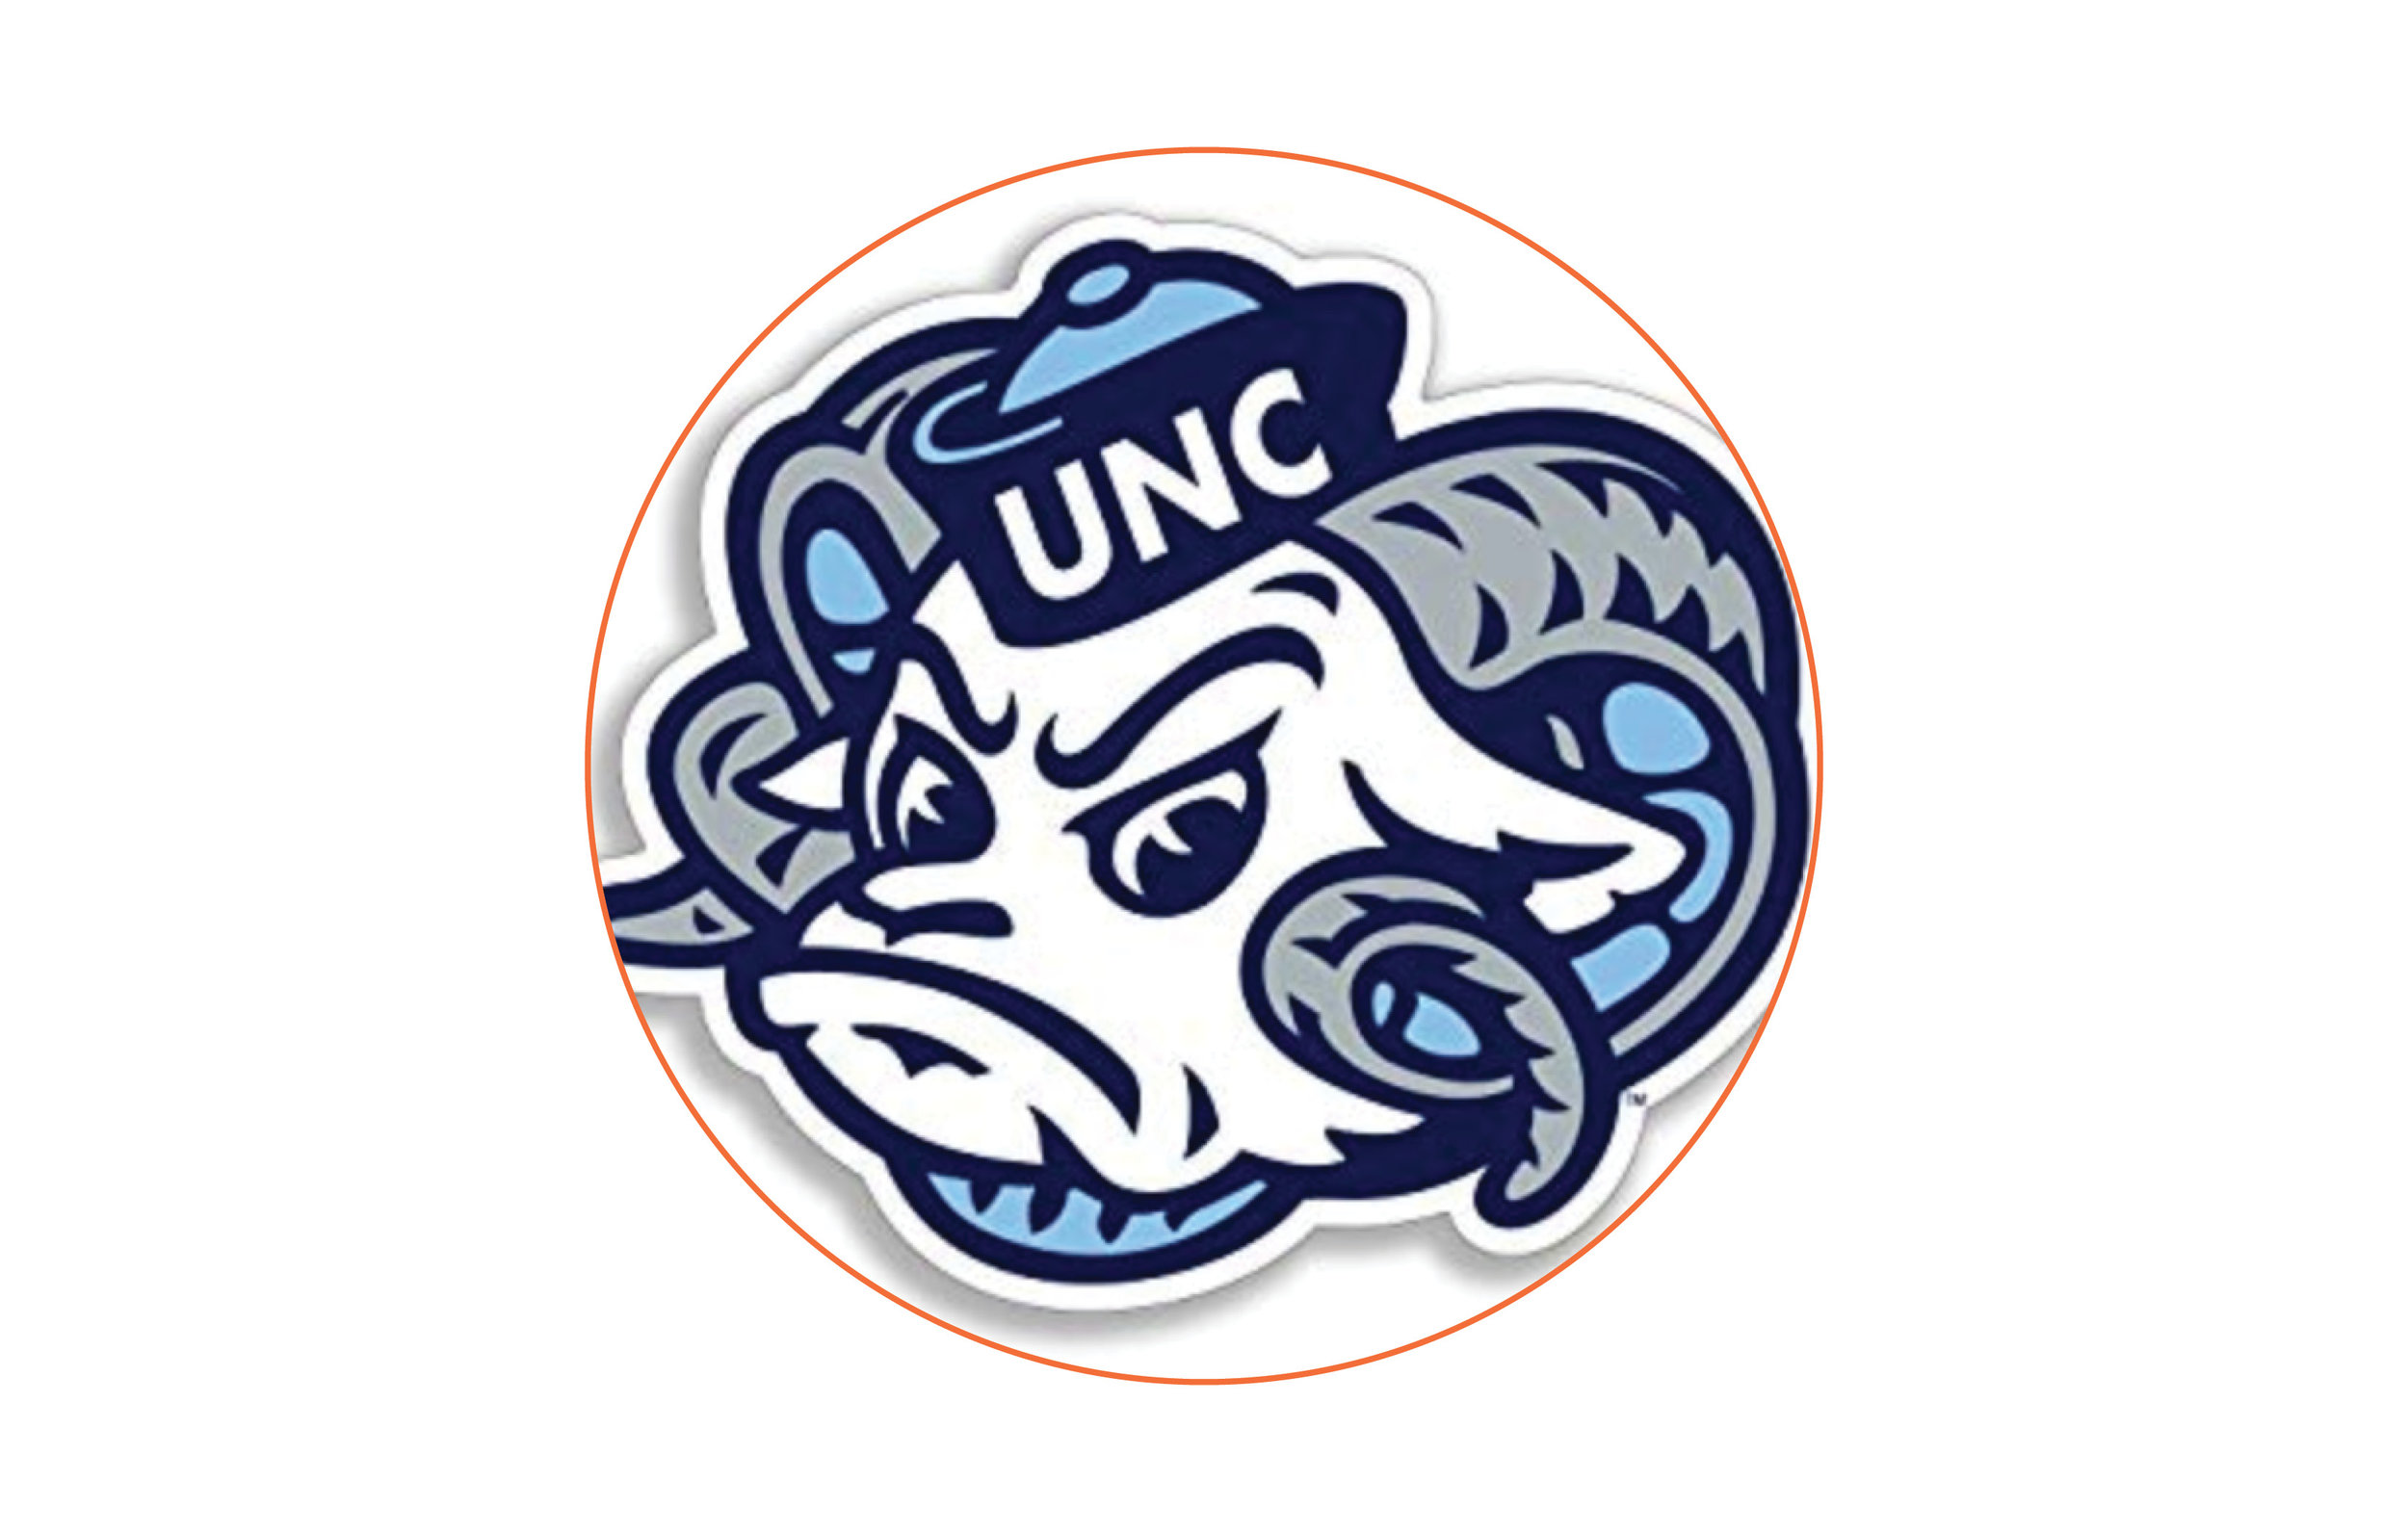 Brush with celebrity? - I took a creative writing class with basketball players Brice Johnson and JP Tokoto when I was at UNC. Does that count?